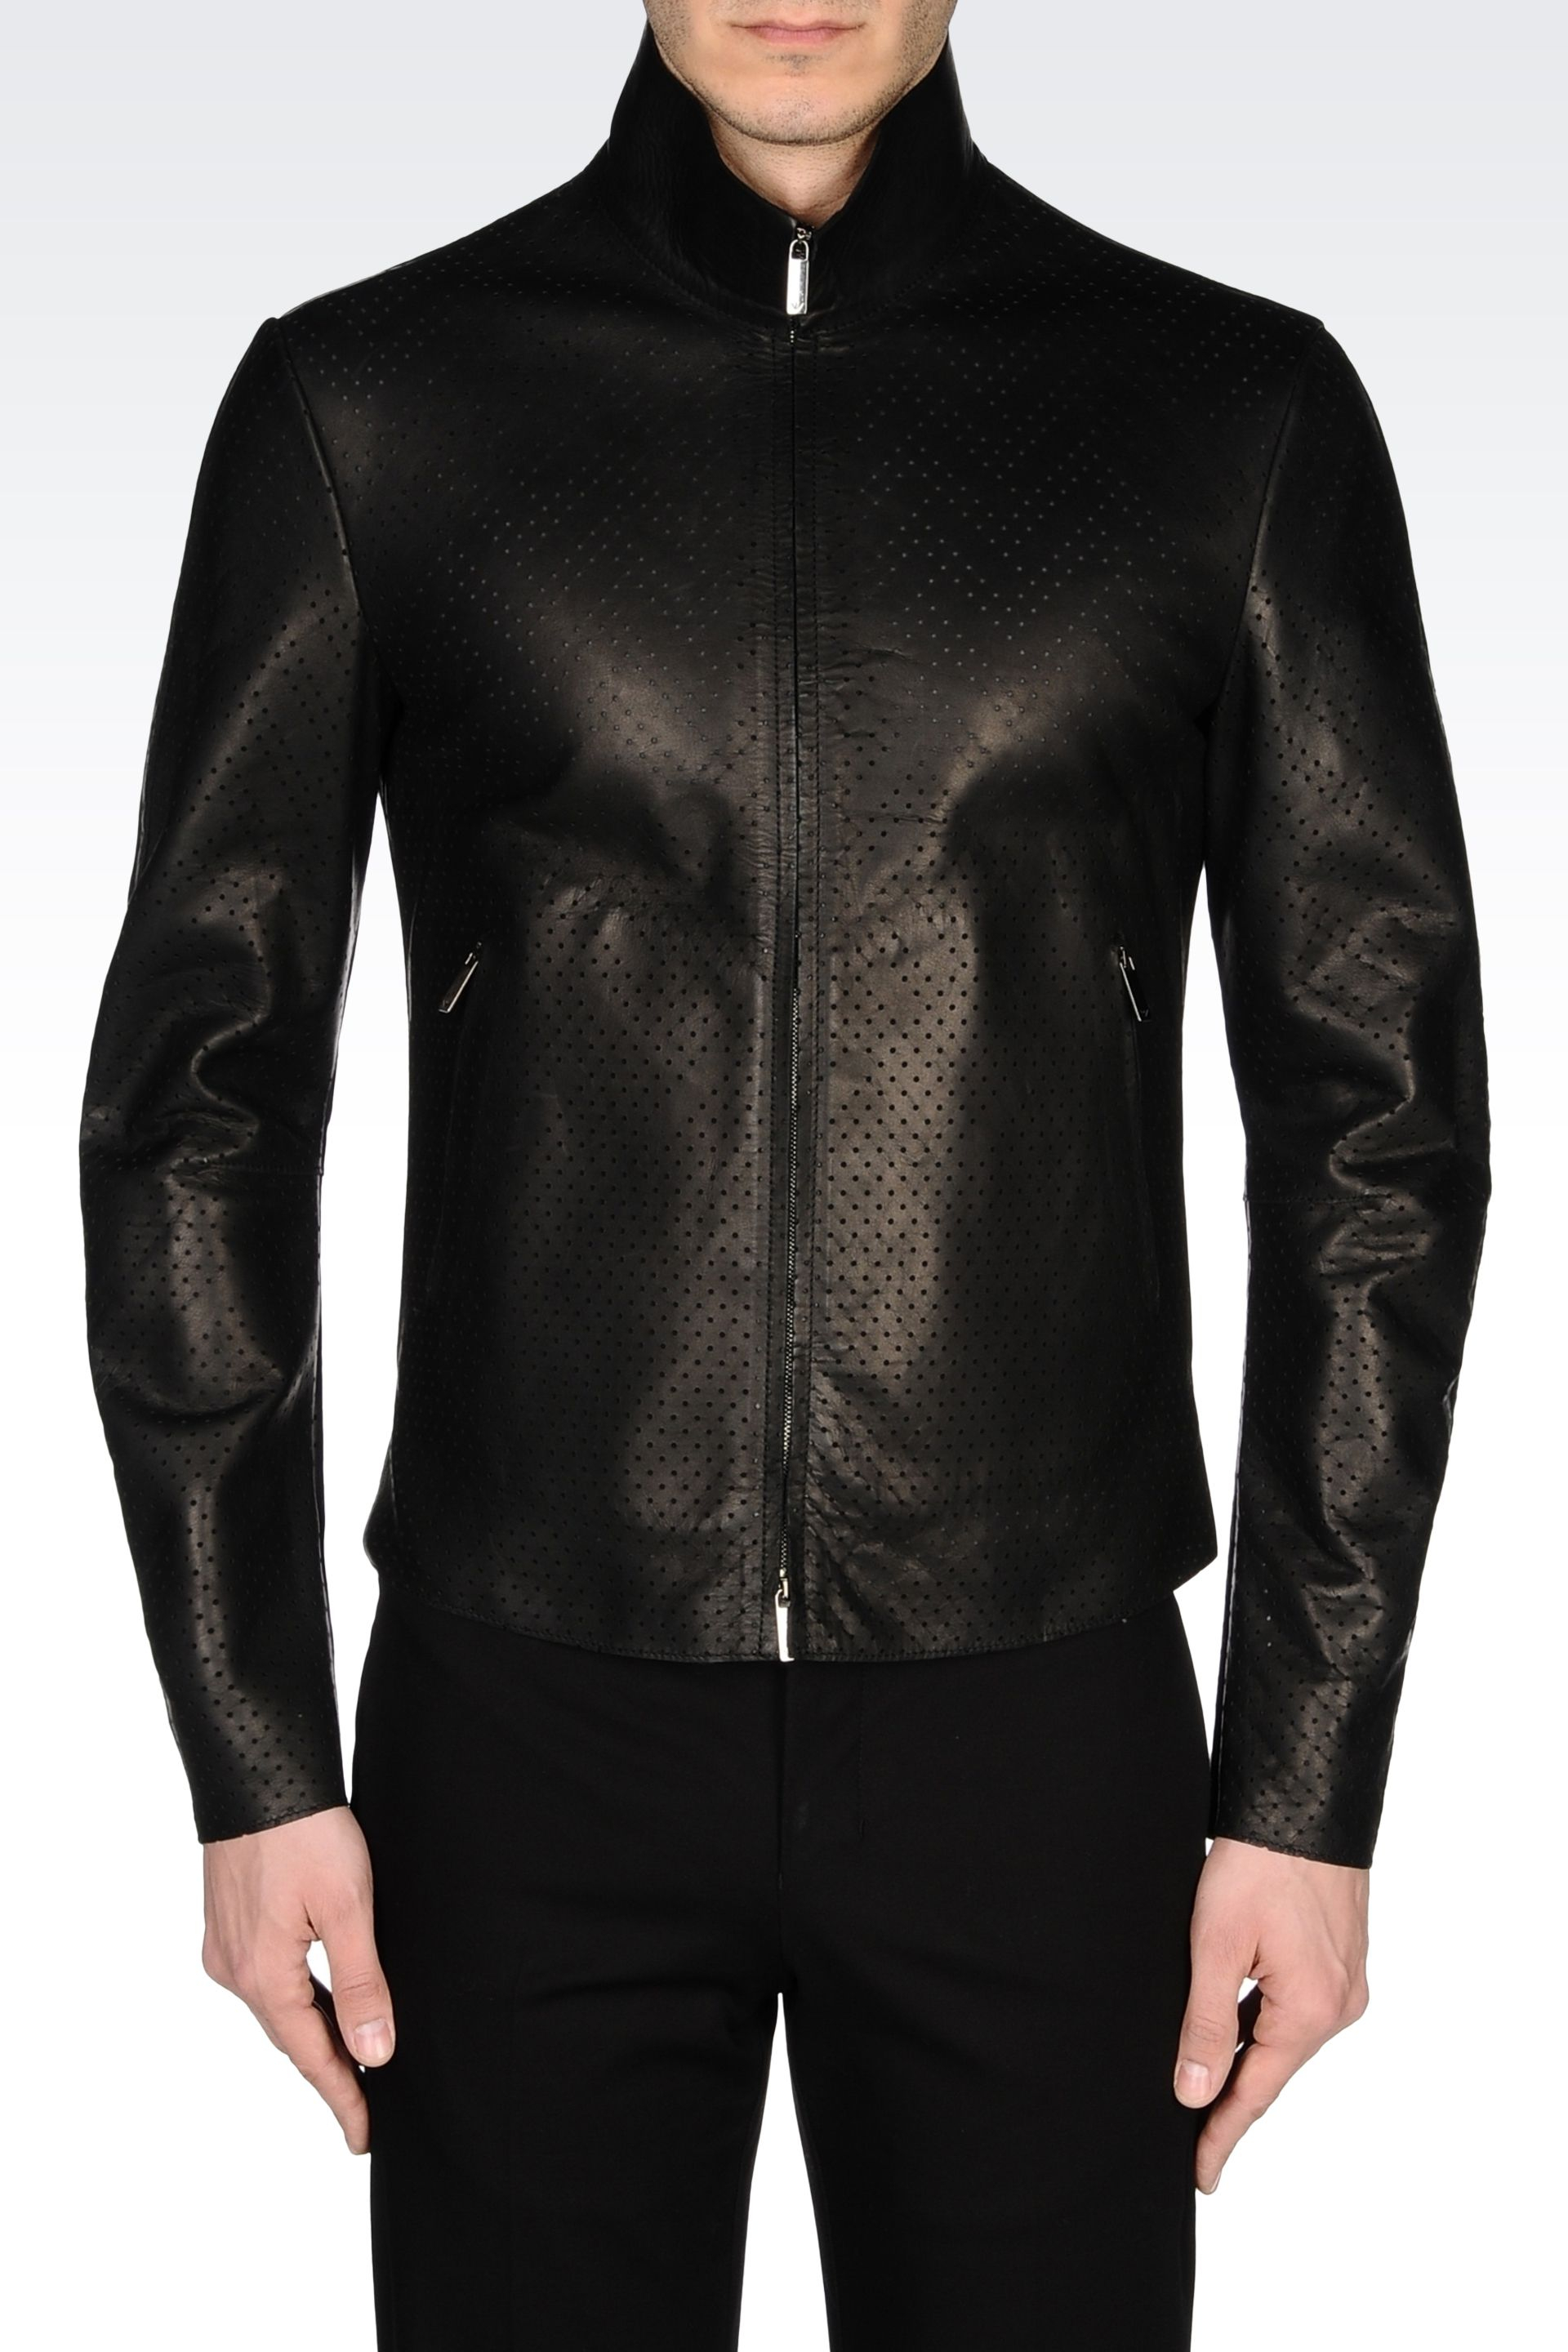 Emporio Armani Leather Jacket In Black For Men Lyst